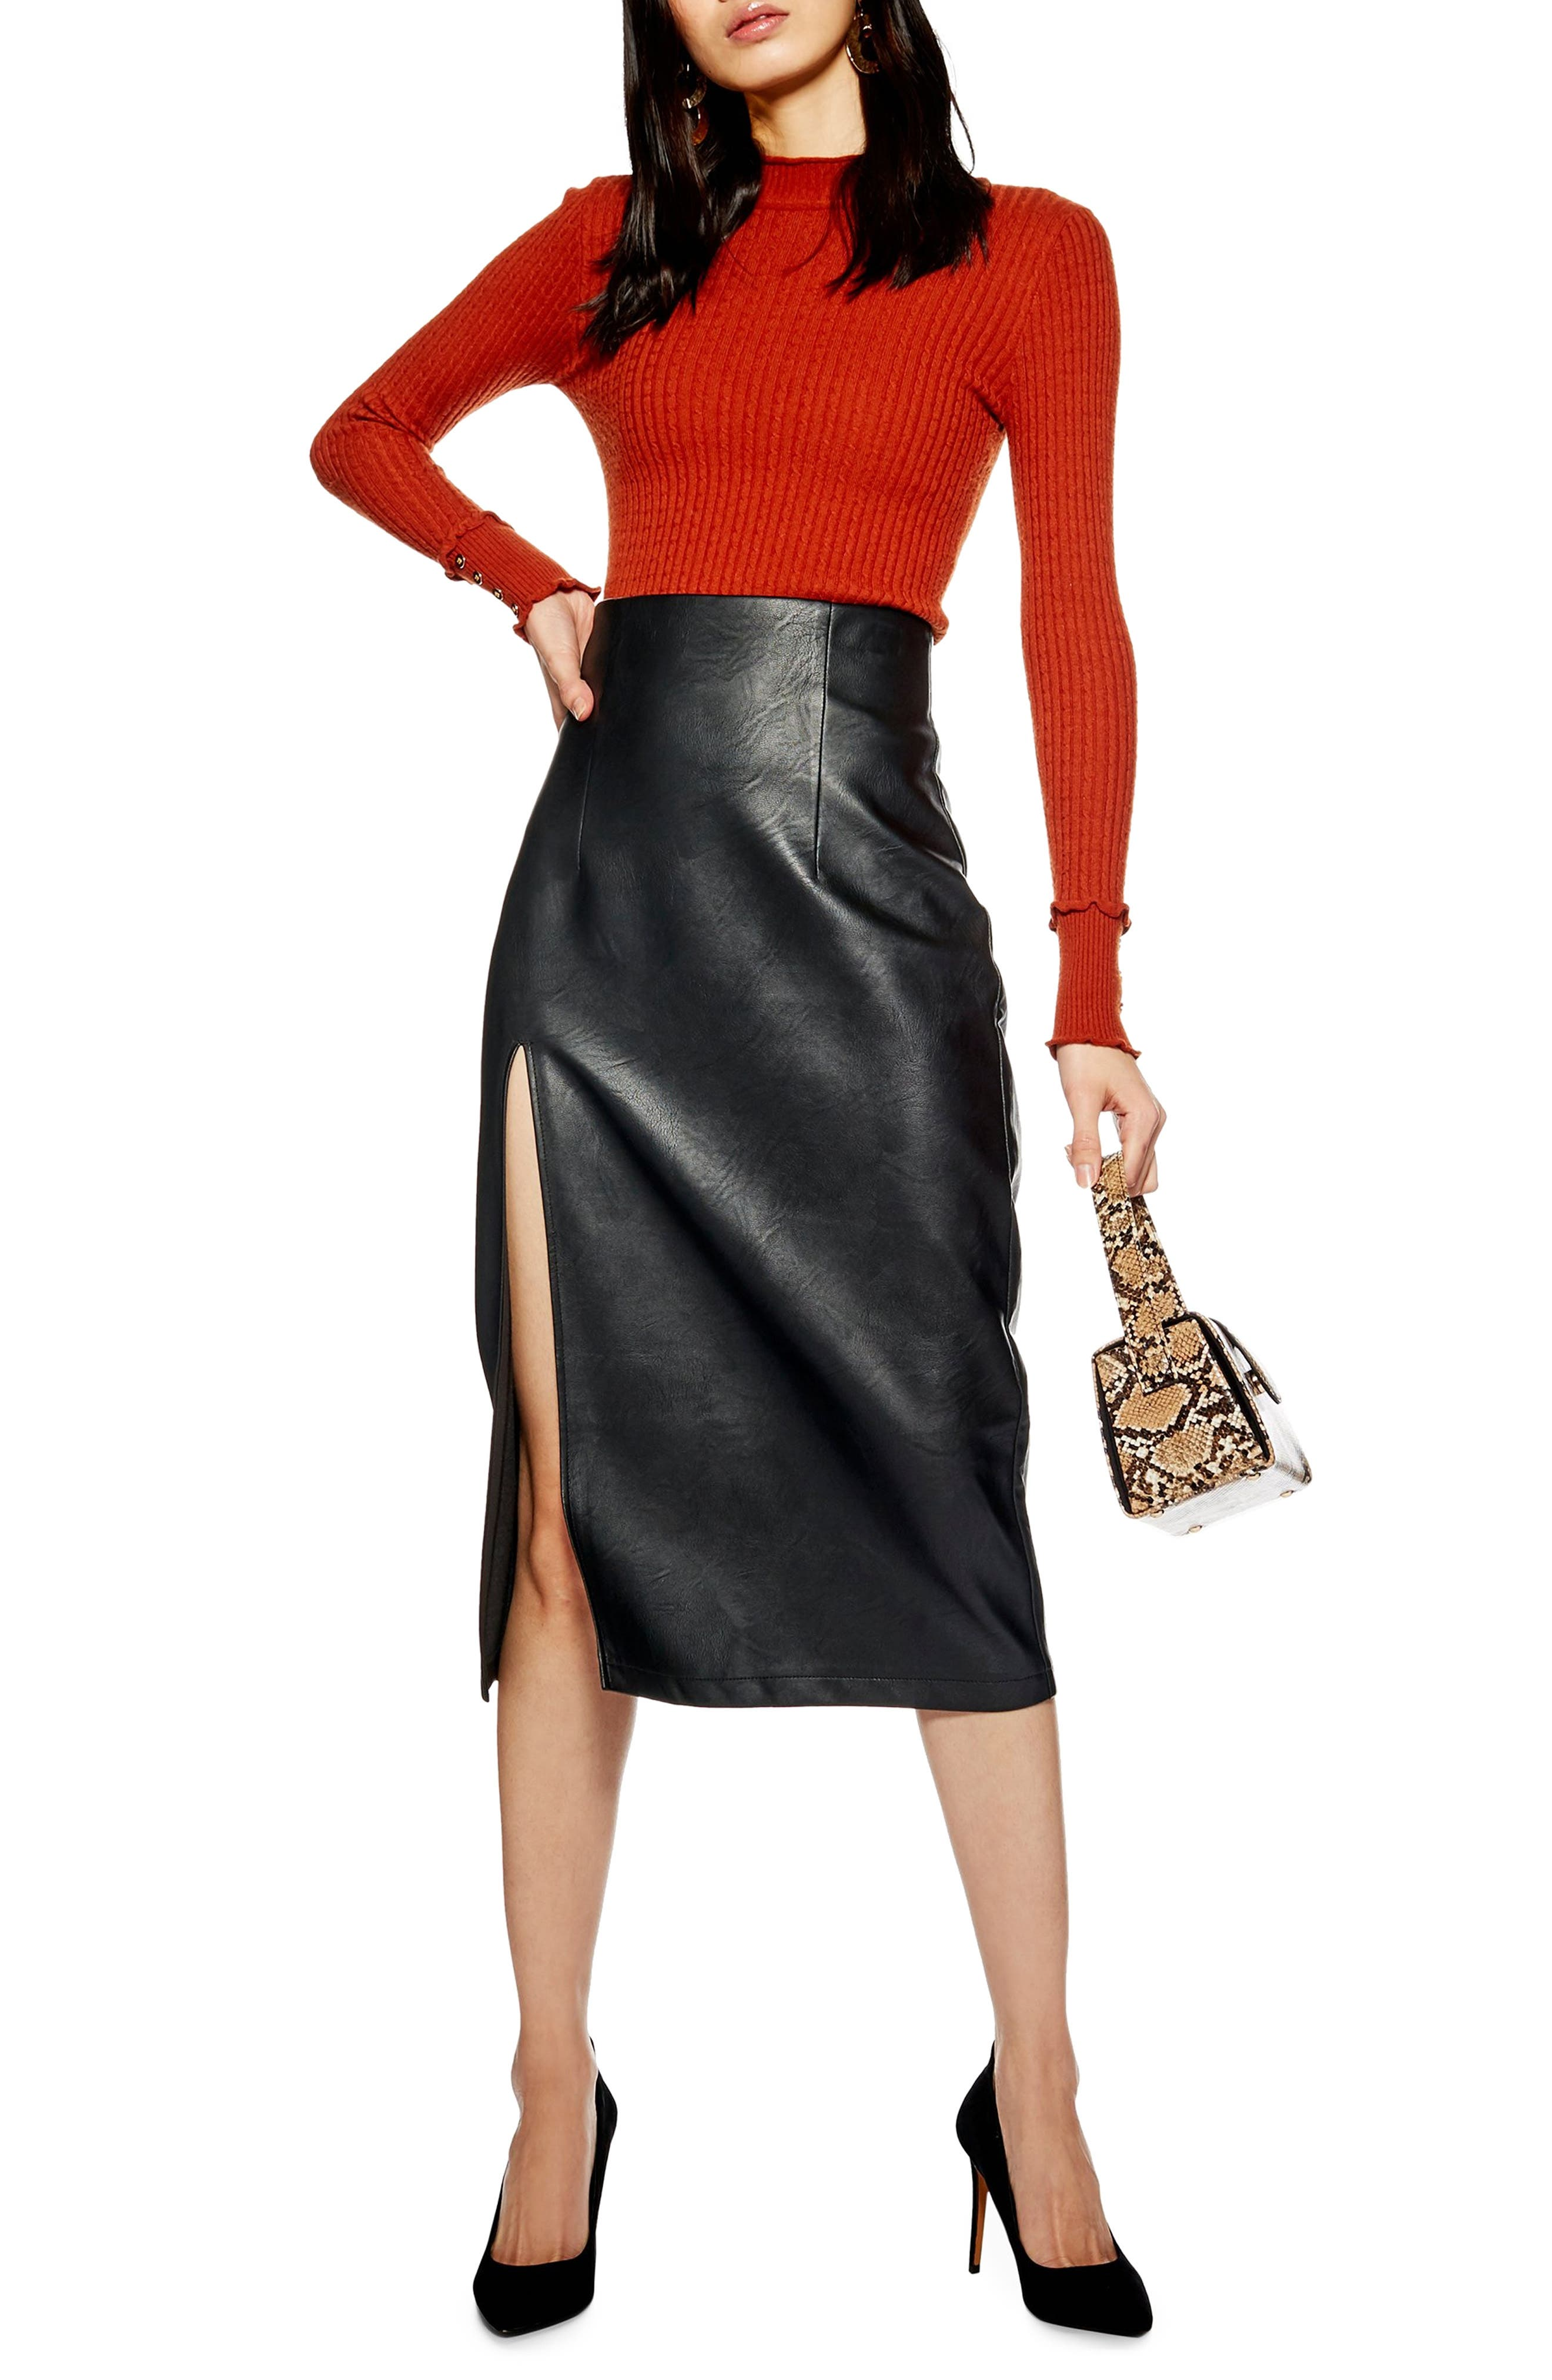 Topshop Faux Leather Pencil Skirt, US (fits like 0) - Black